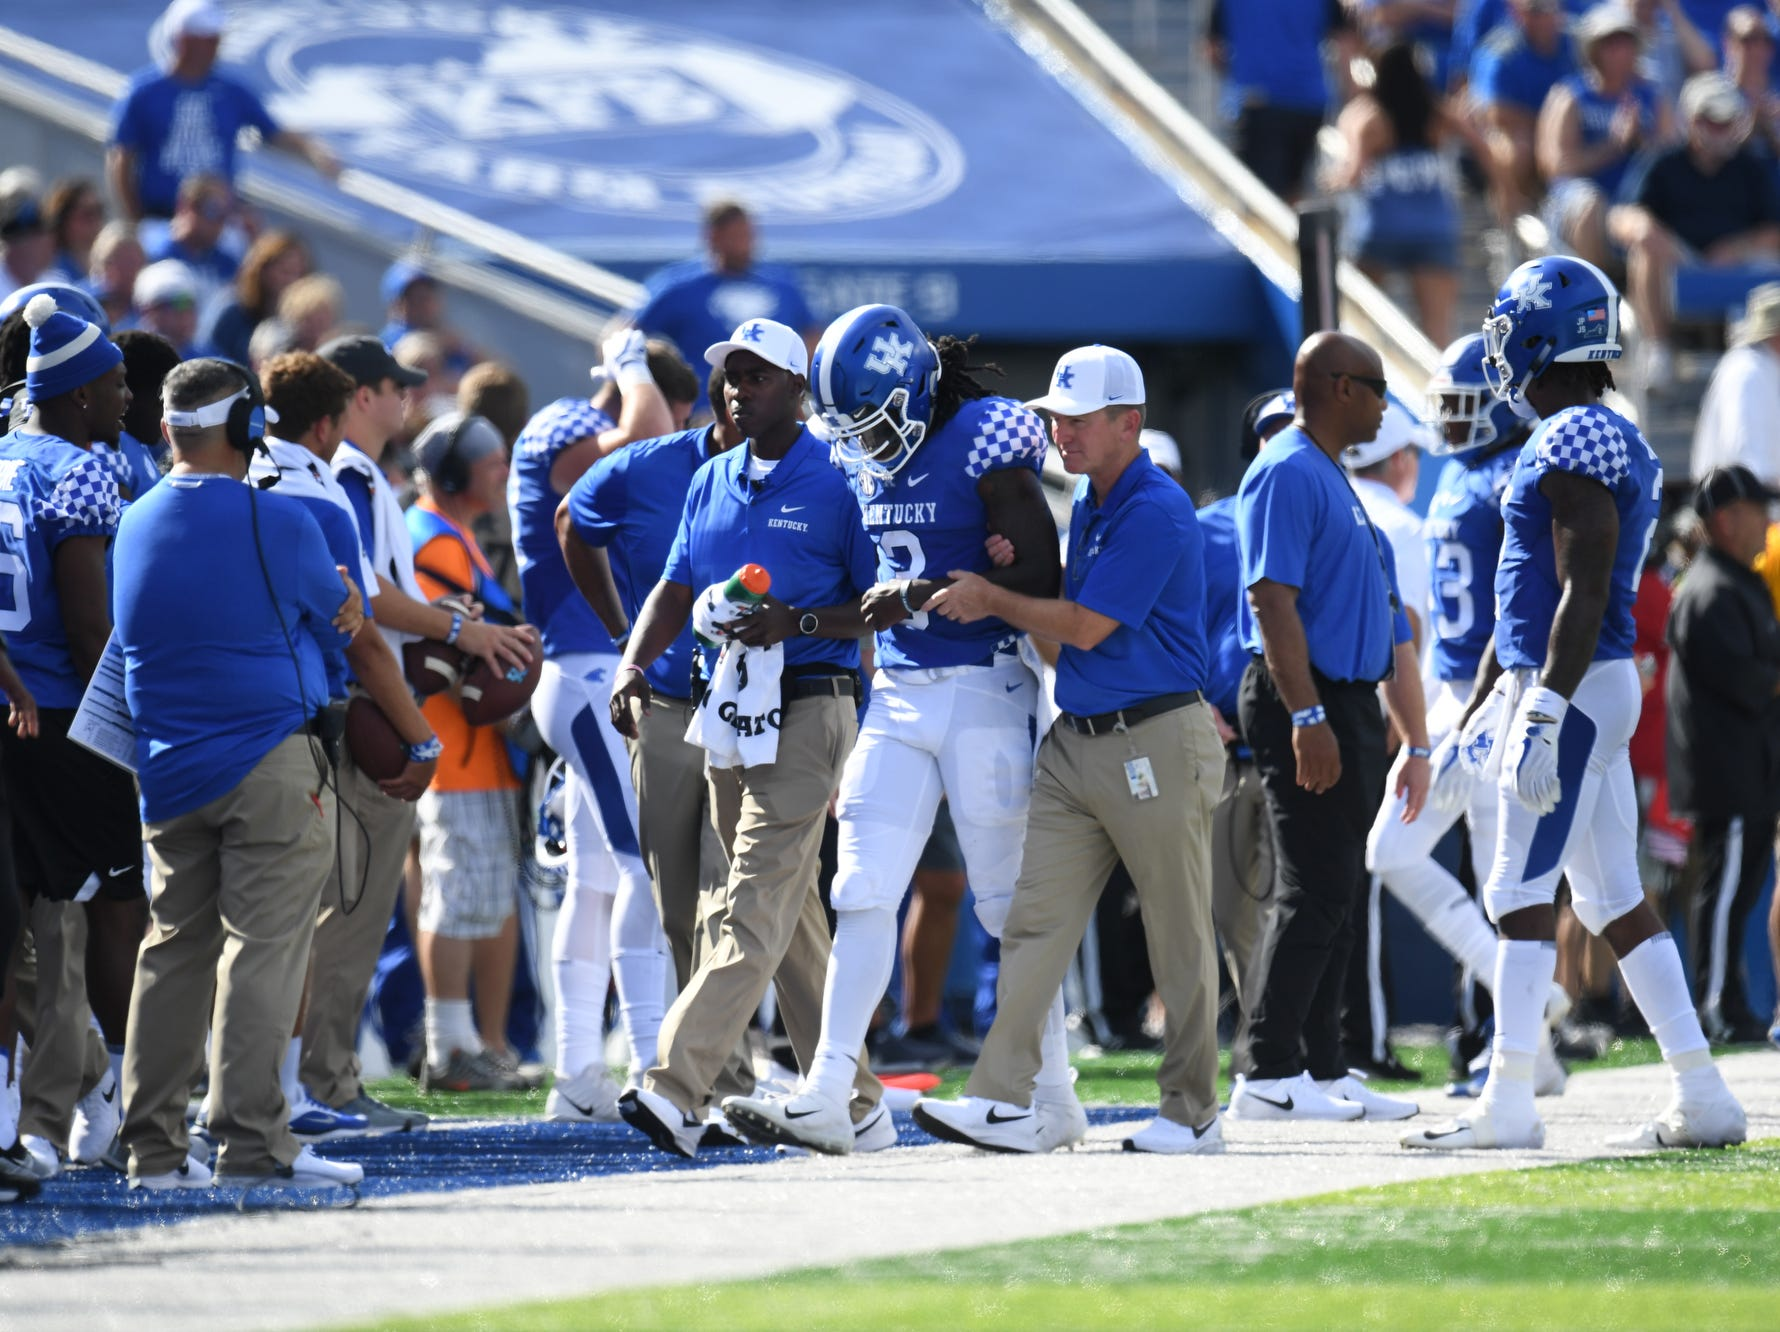 UK QB Terry Wilson is injured and walks off the field during the University of Kentucky football game against Central Michigan at Kroger Field in Lexington, Kentucky on Saturday, September 1, 2018.